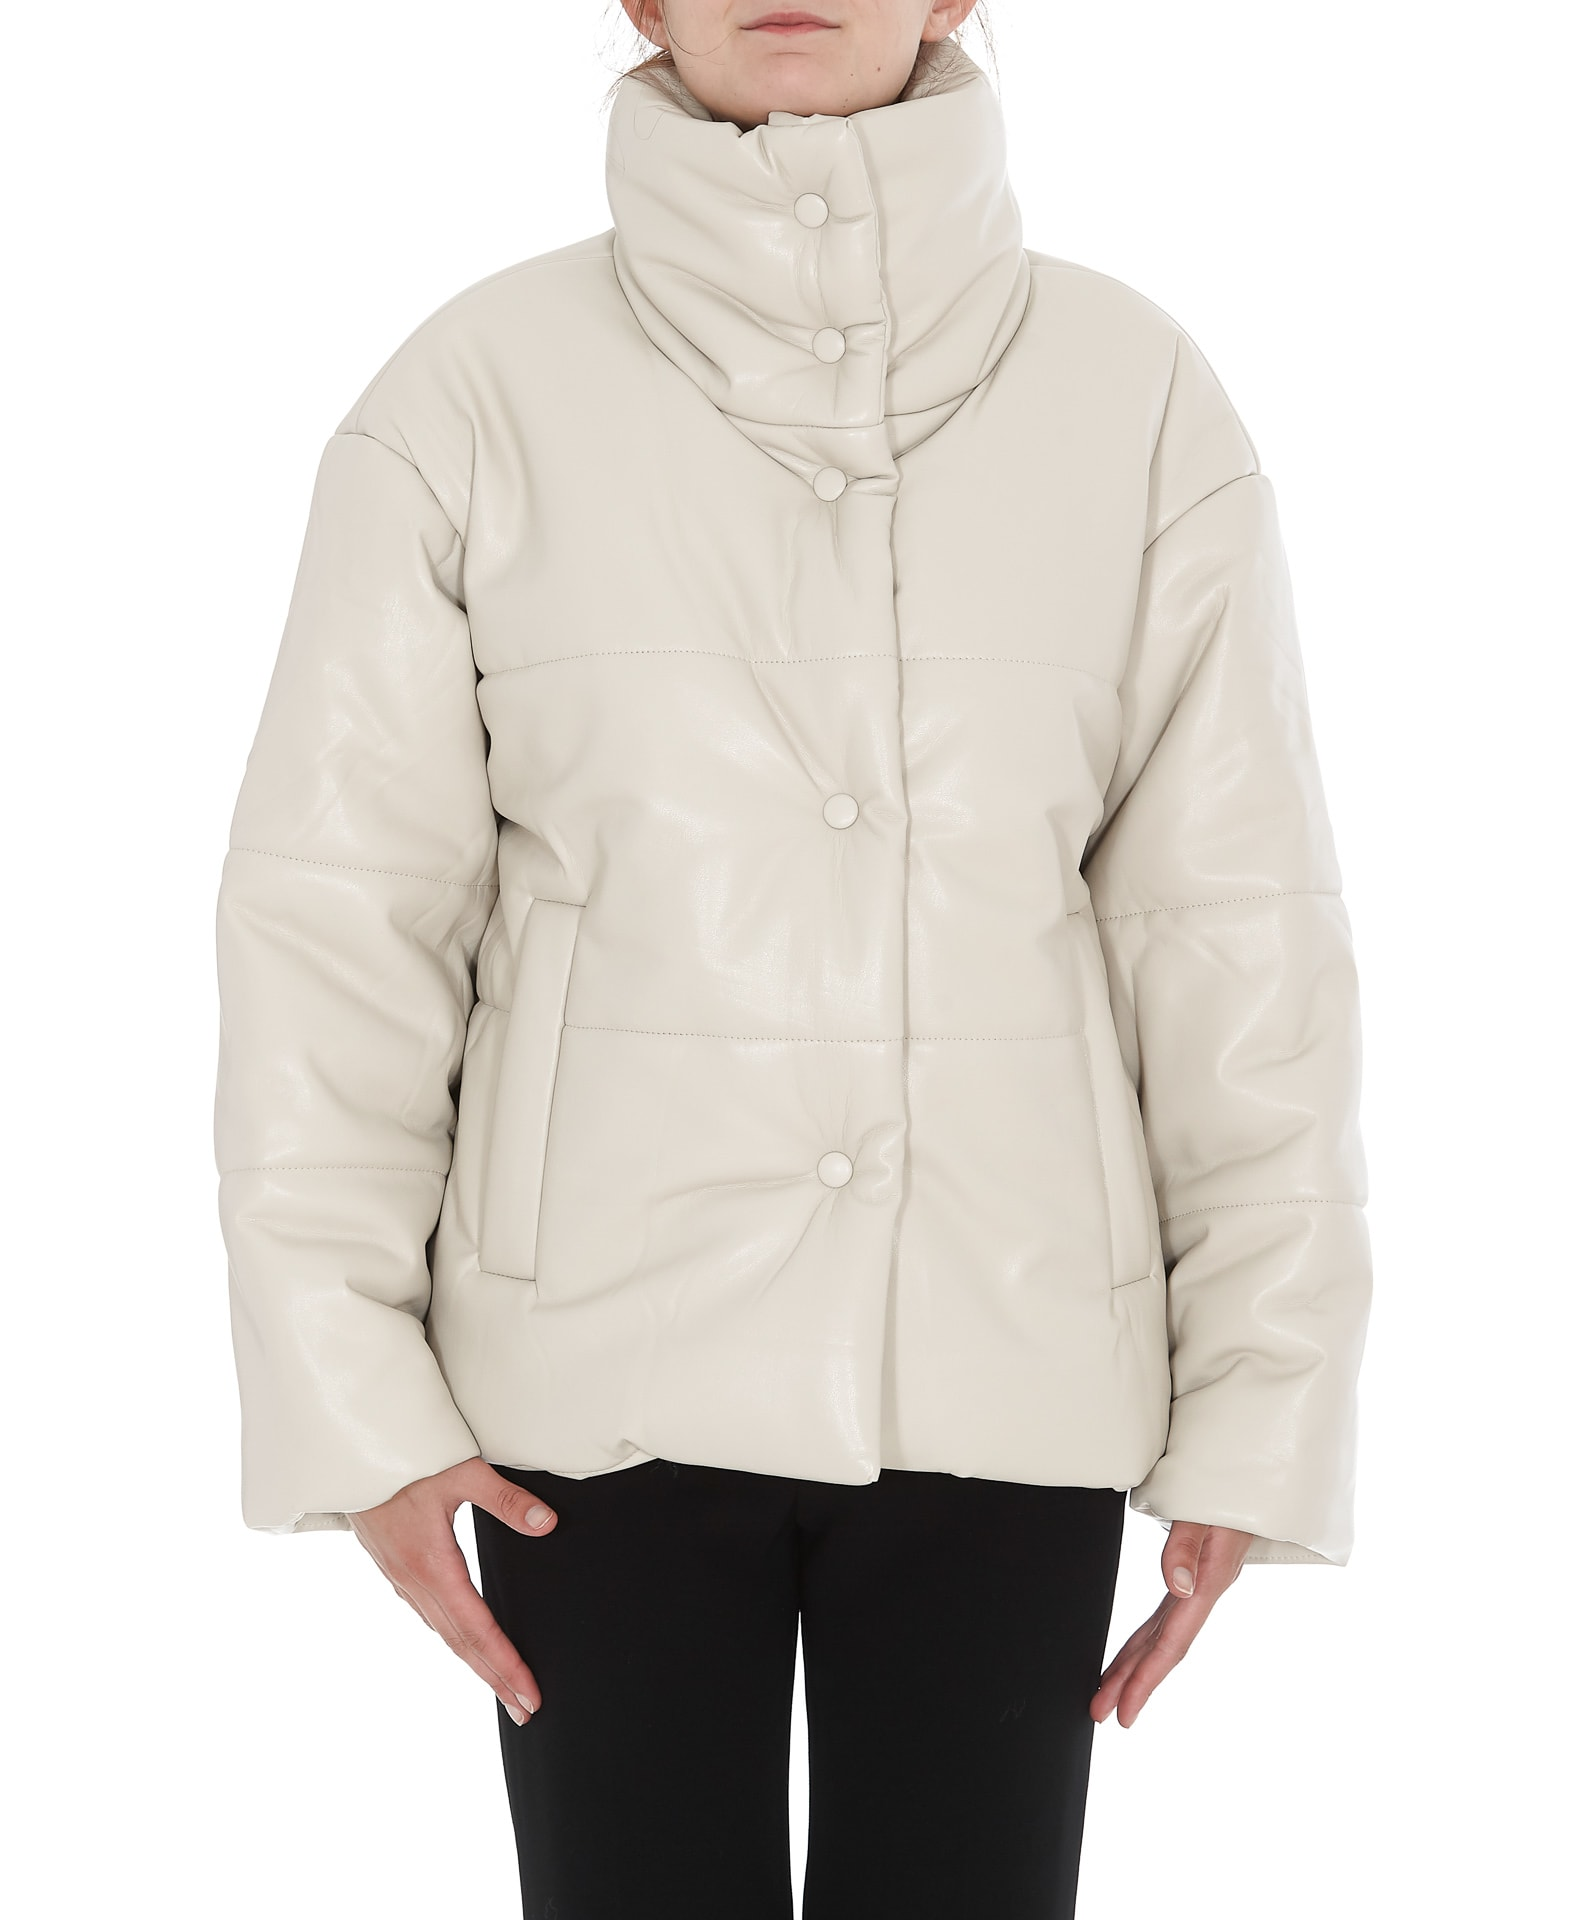 Nanushka Down Jacket